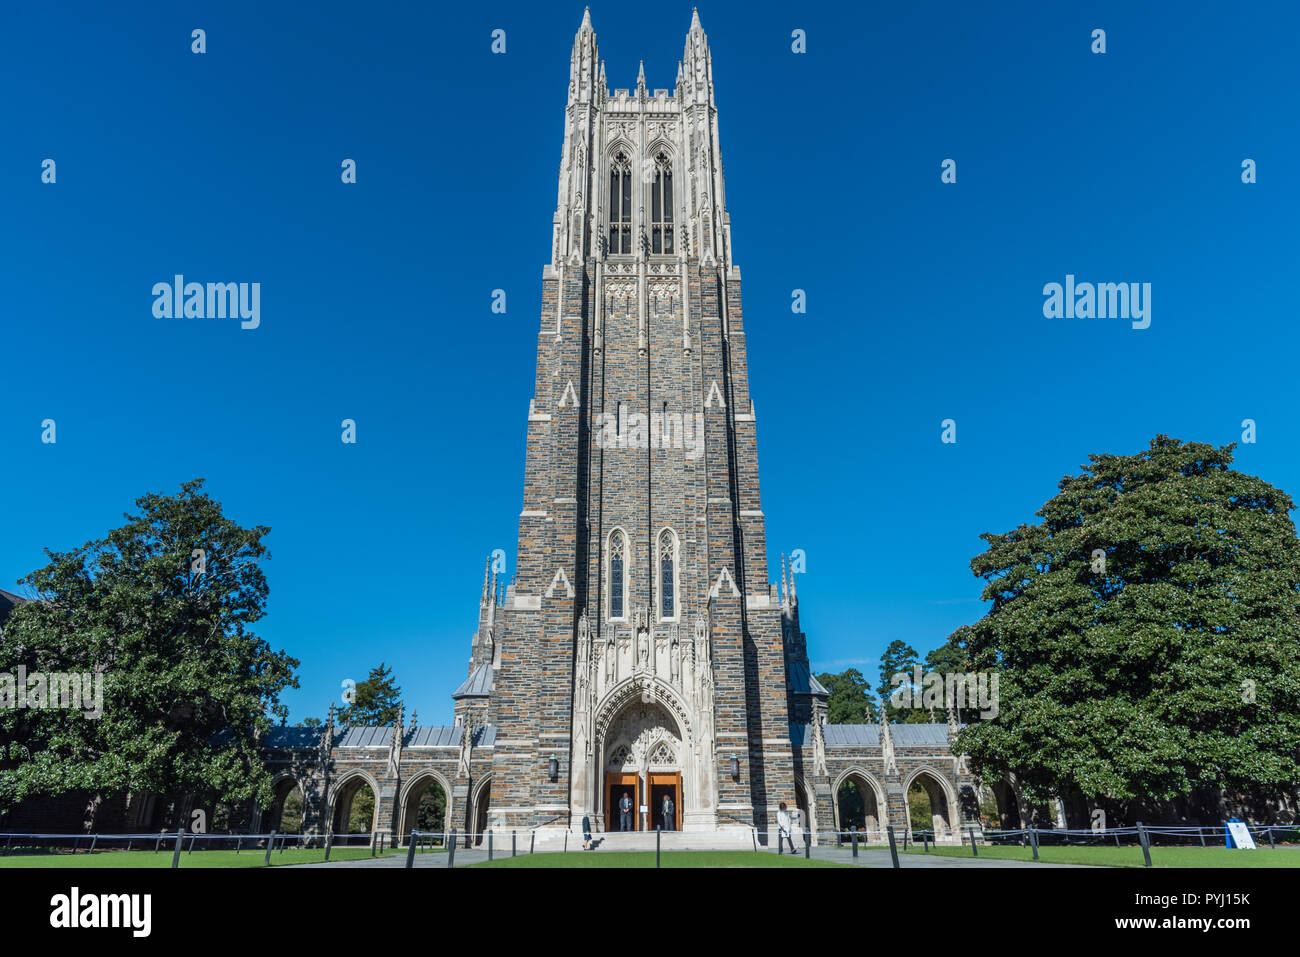 Front view of the Duke Chapel tower in early fall, Durham, North Carolina - Stock Image